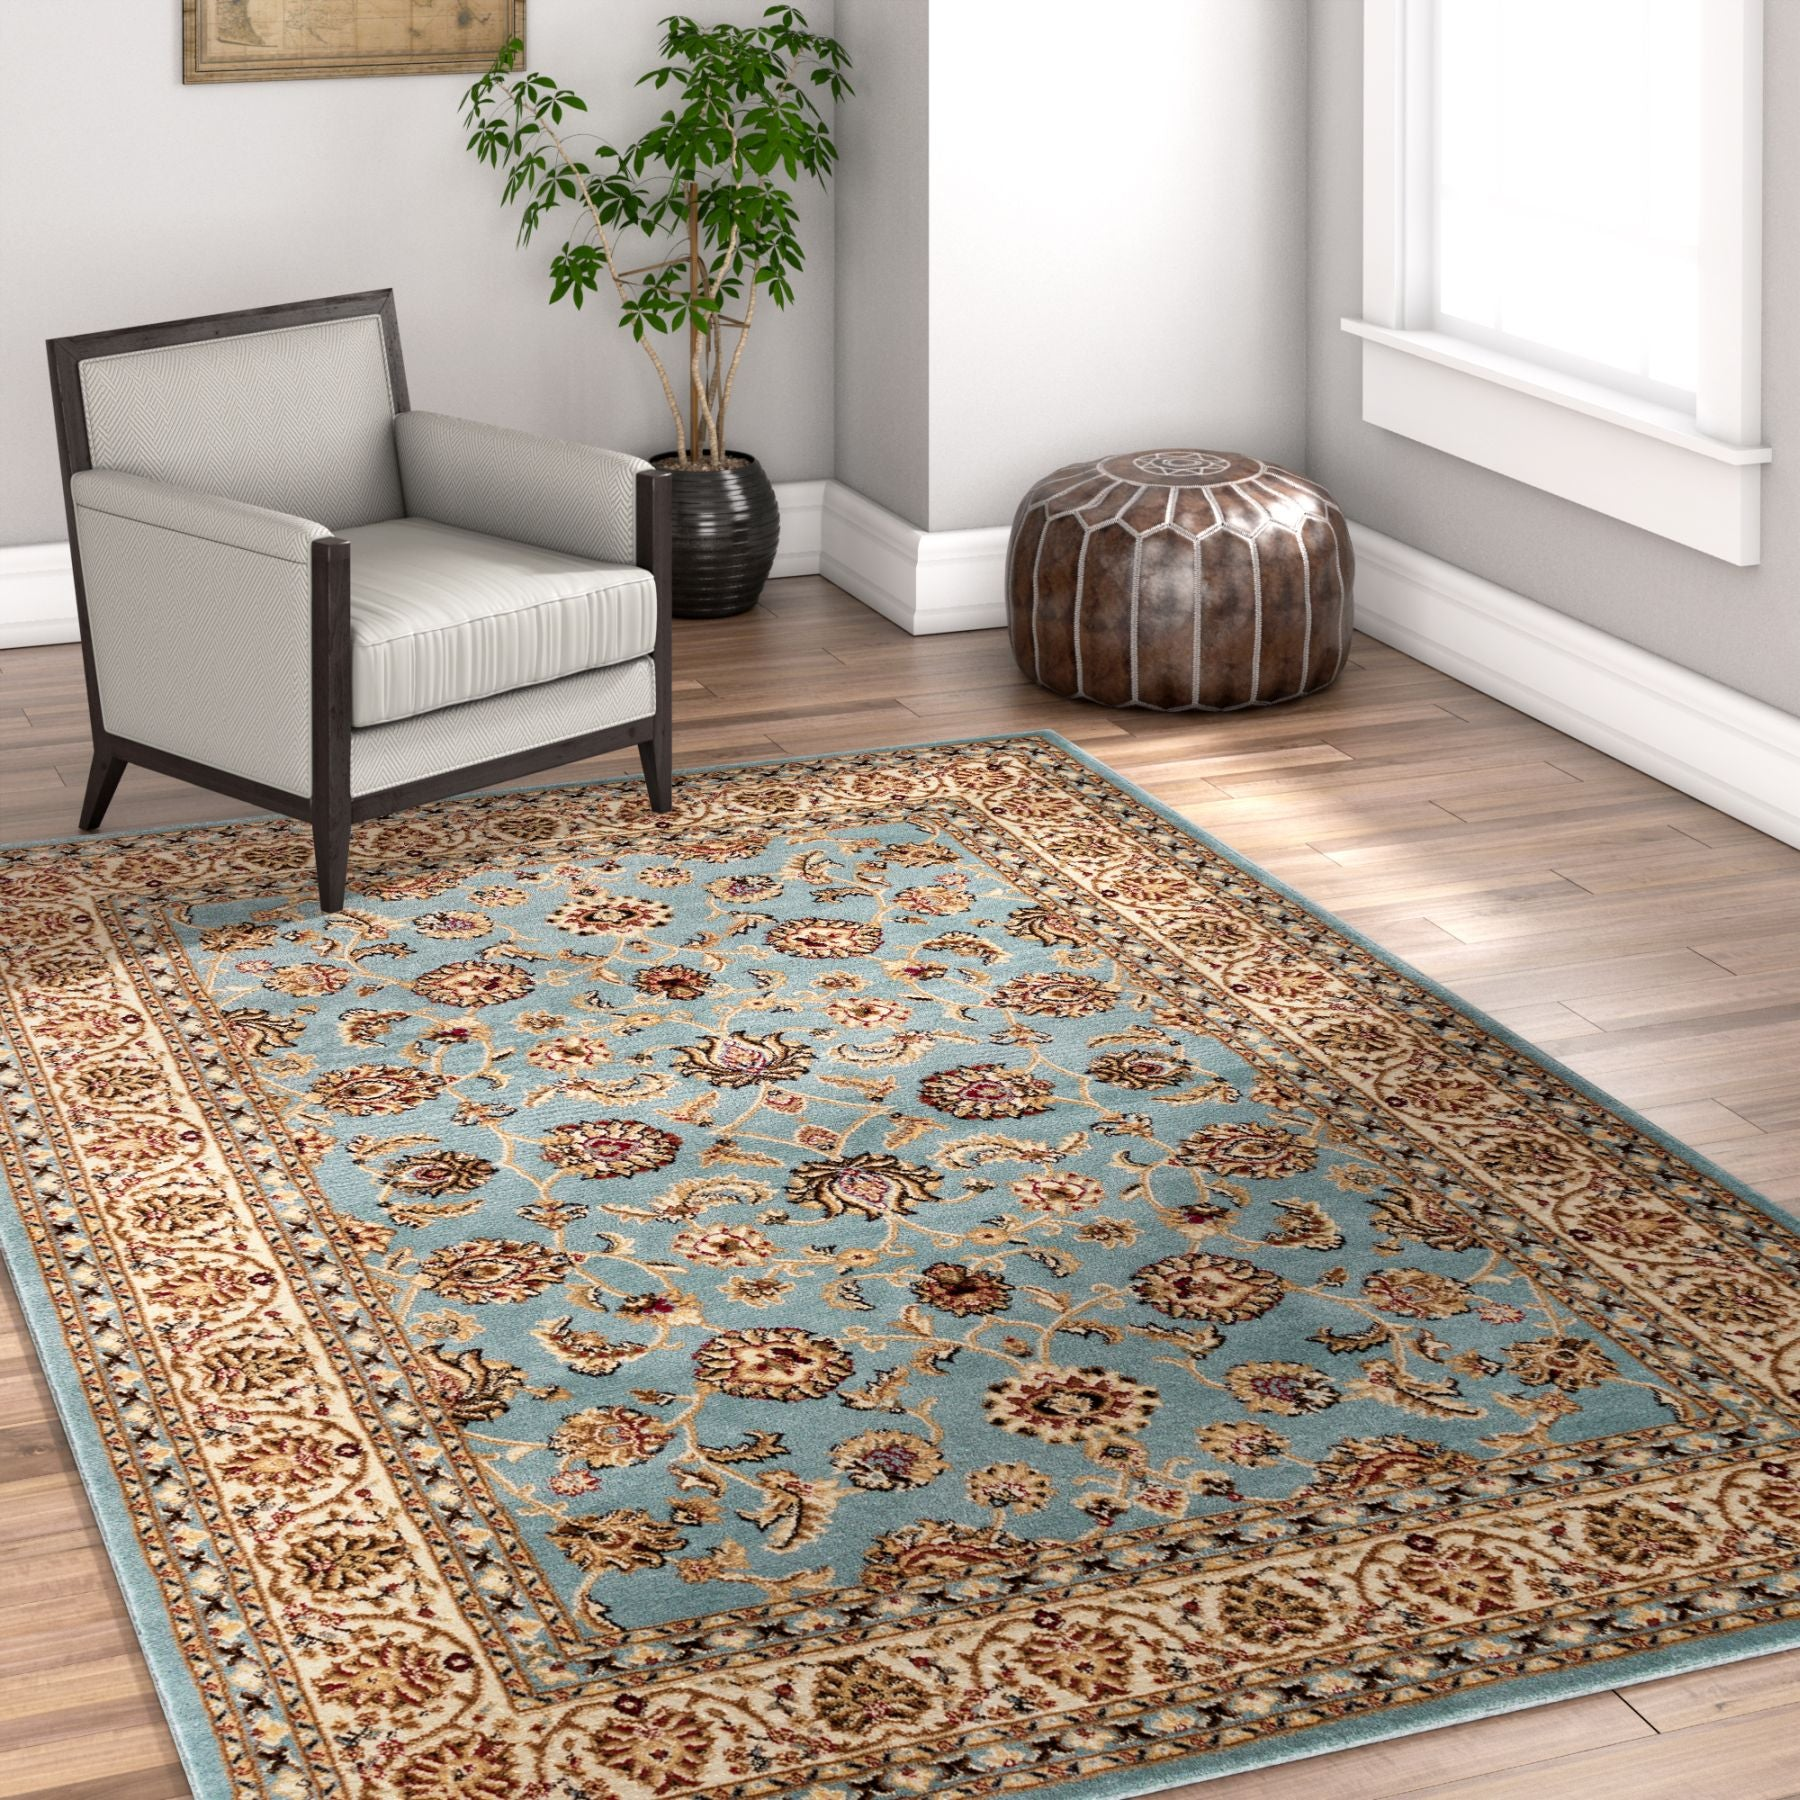 Noble Sarouk Light Blue Persian Floral Oriental Formal Traditional Area Rug